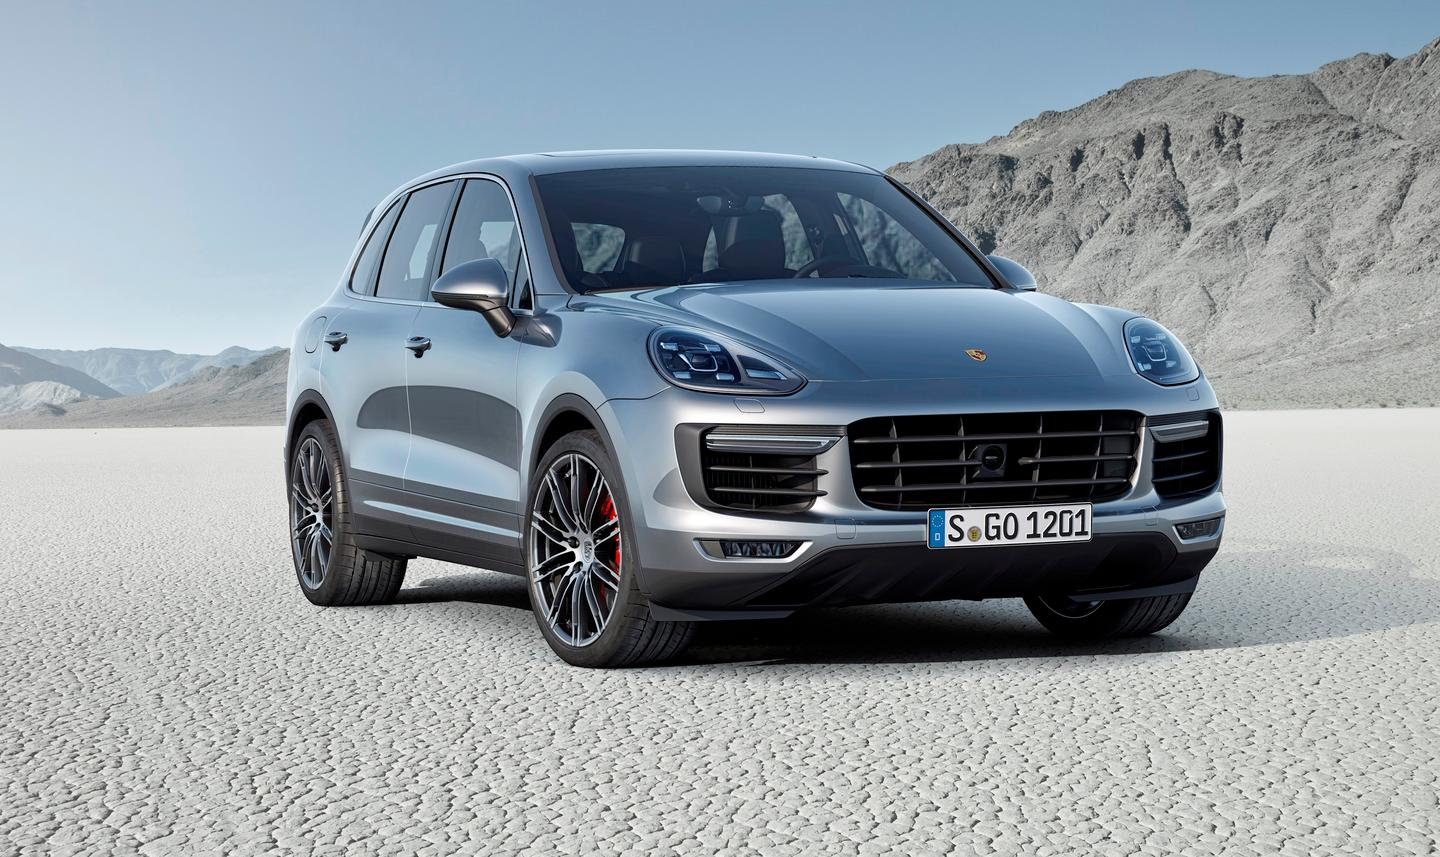 The 520-hp 2015 Cayenne Turbo is the most powerful of the new SUVs